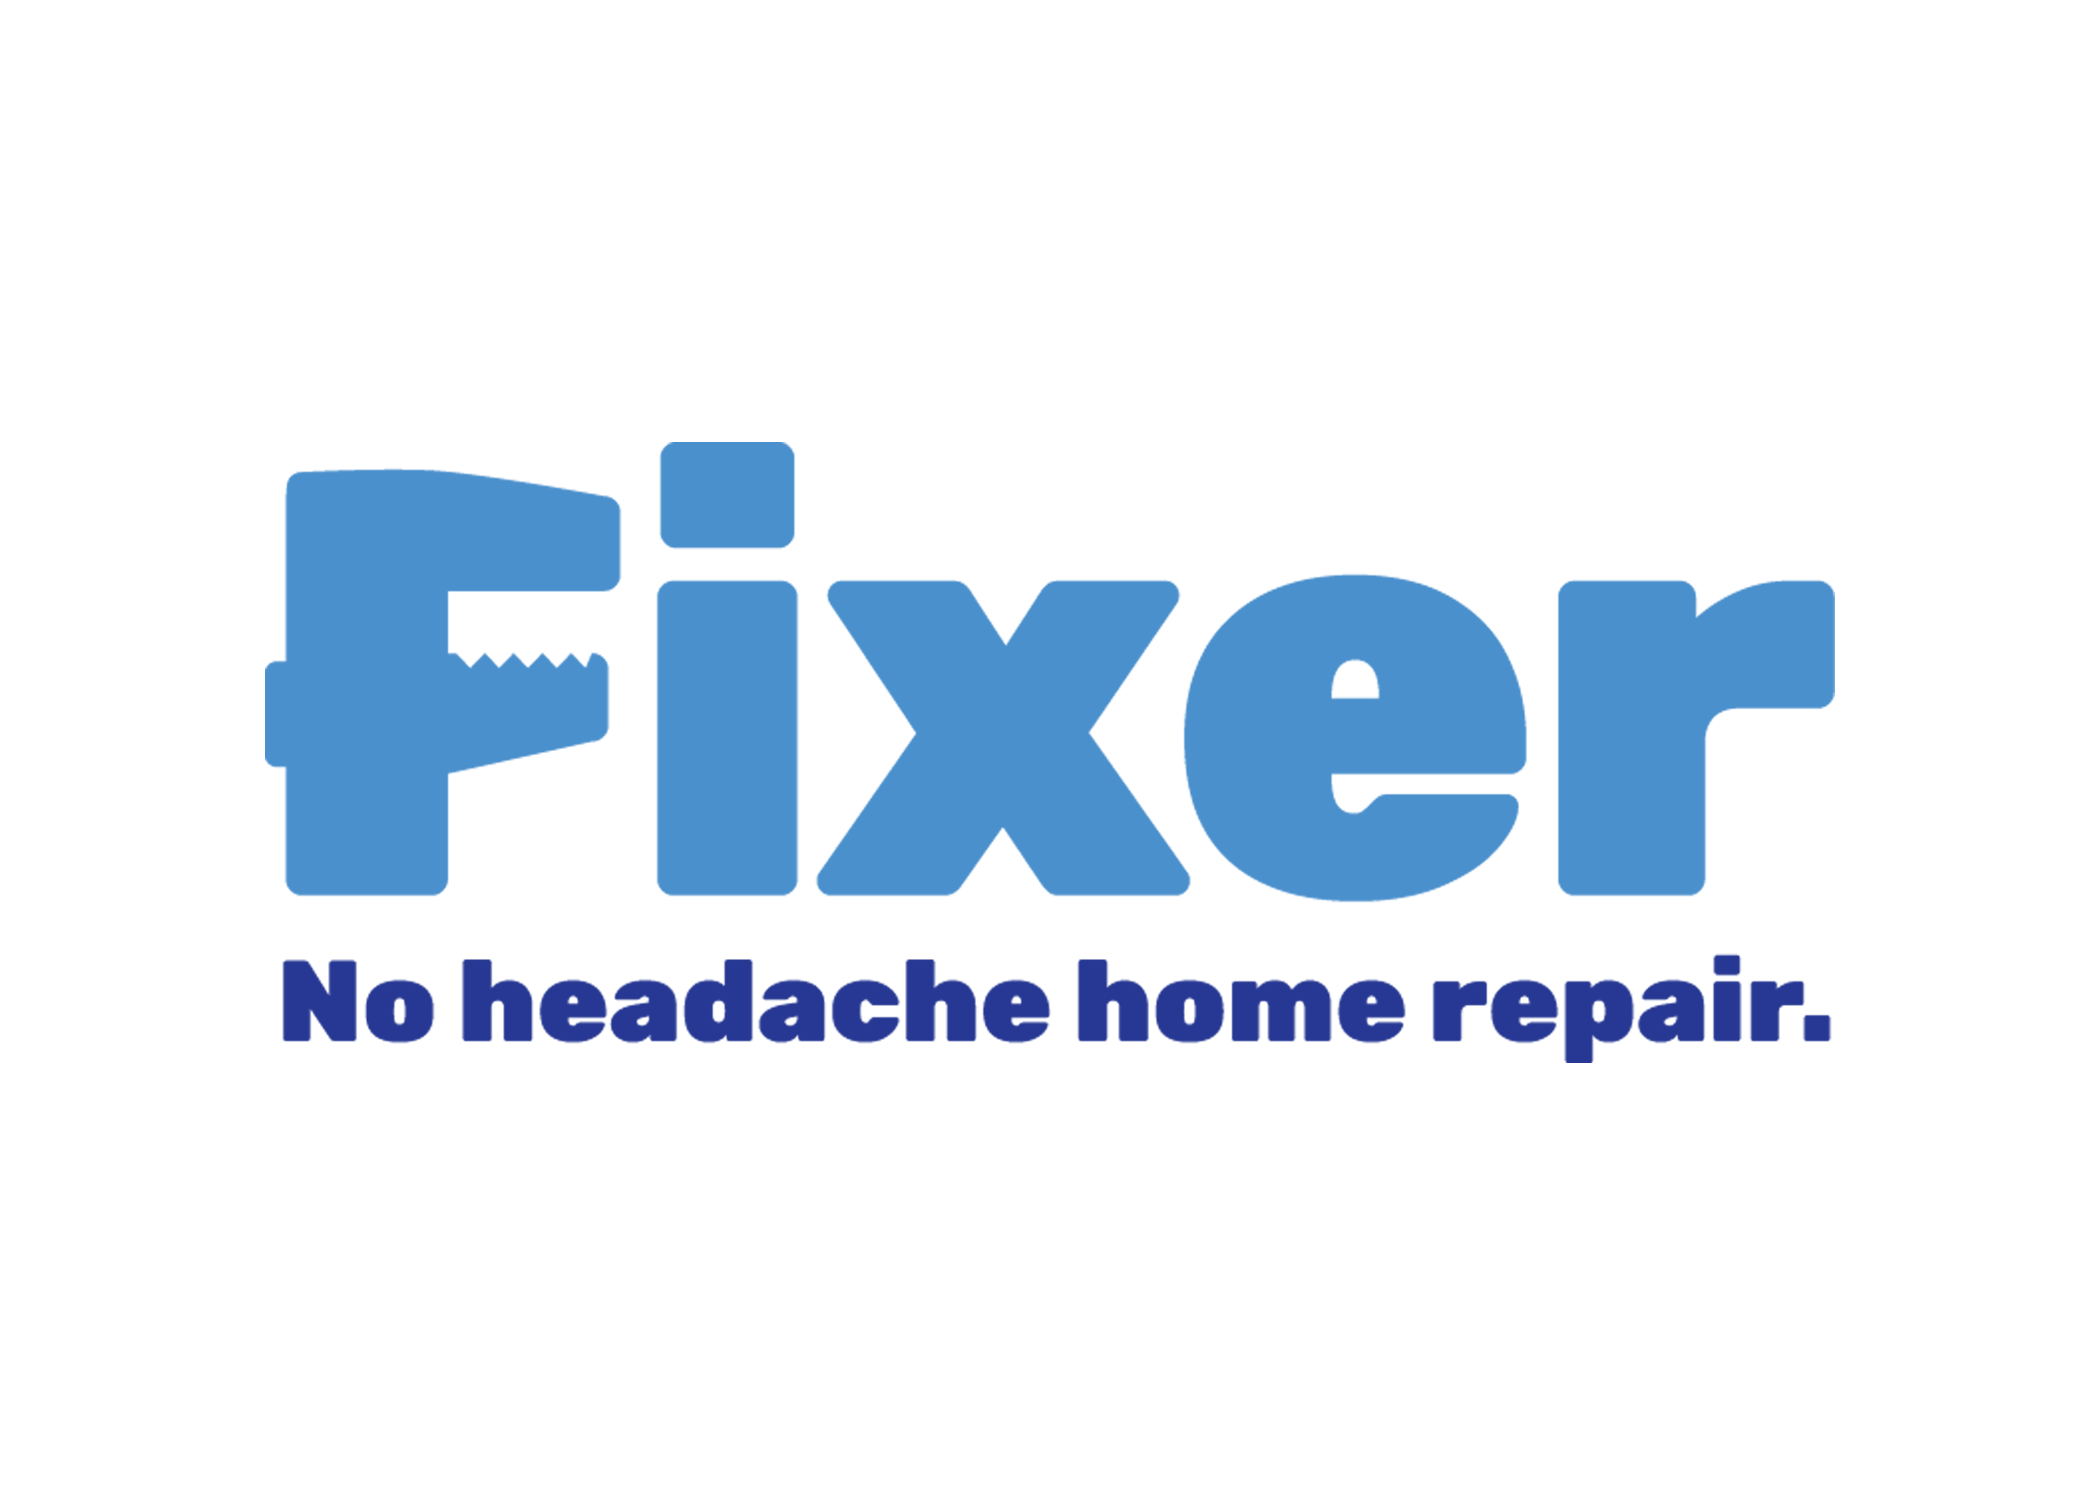 Fixer   is a public benefit corp committed to providing training, certification and sustainable career paths for men and women in home repair and building trades.